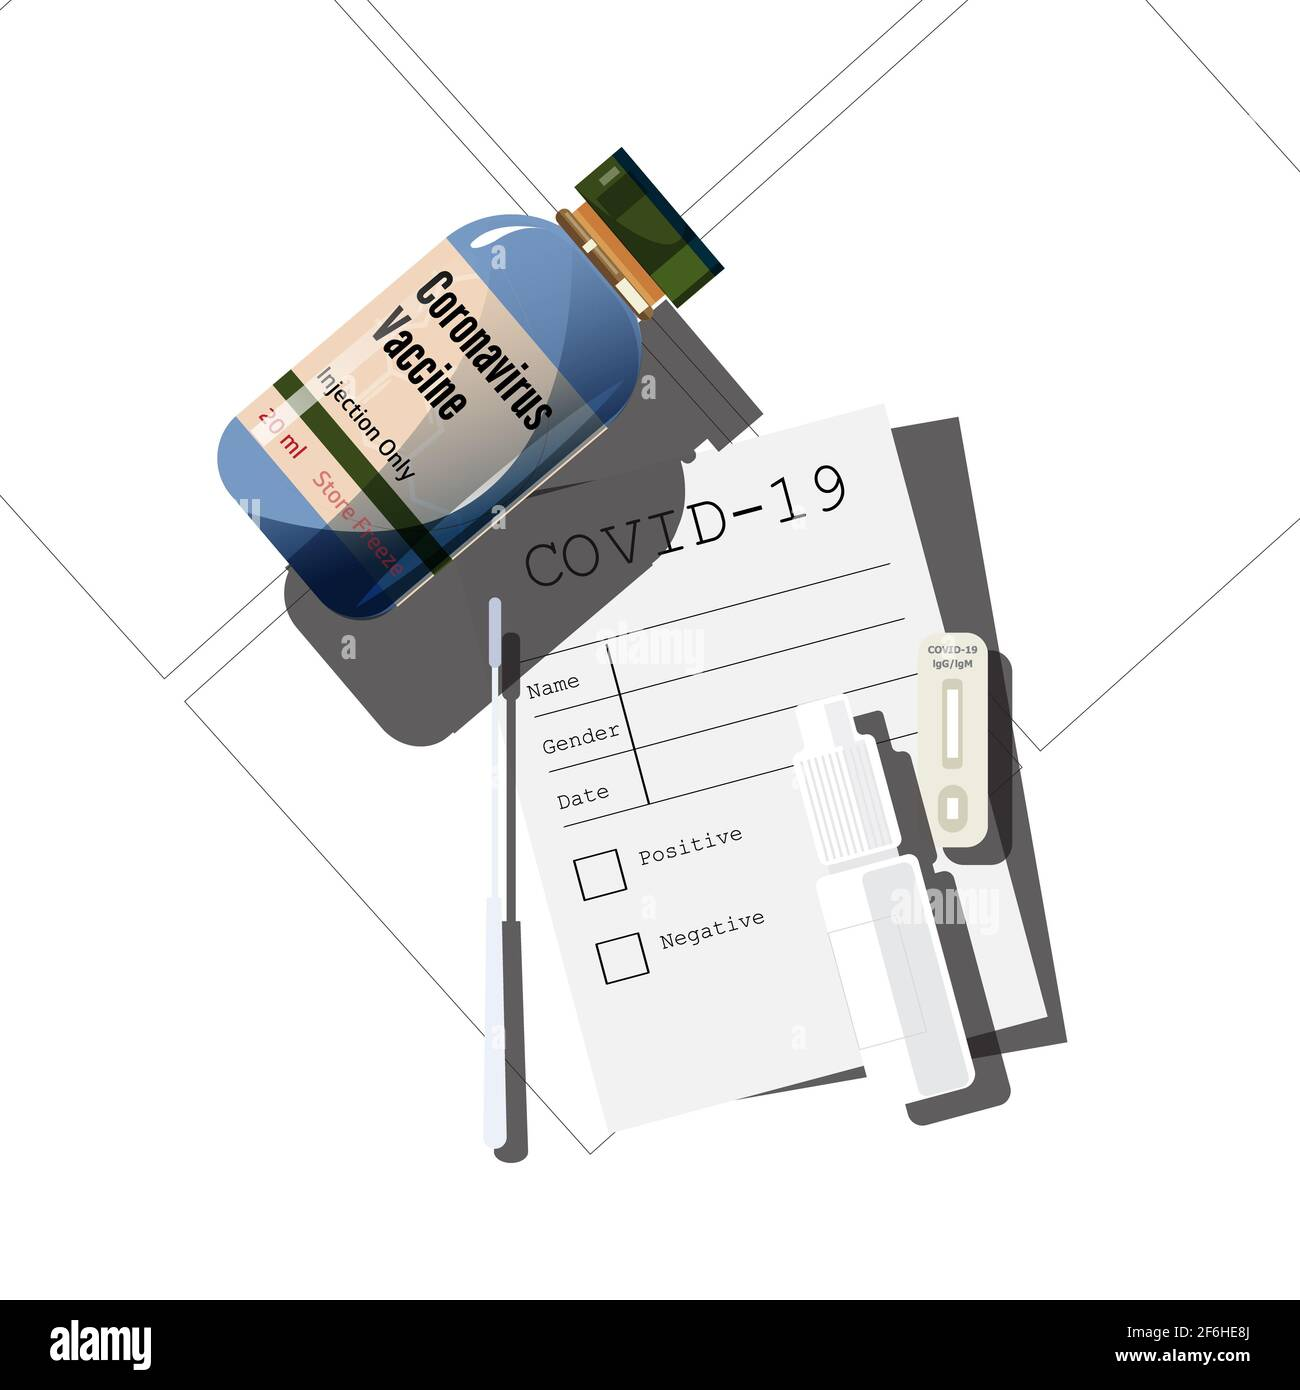 COVID-19 test kit and vaccince - vector illustration Stock Photo